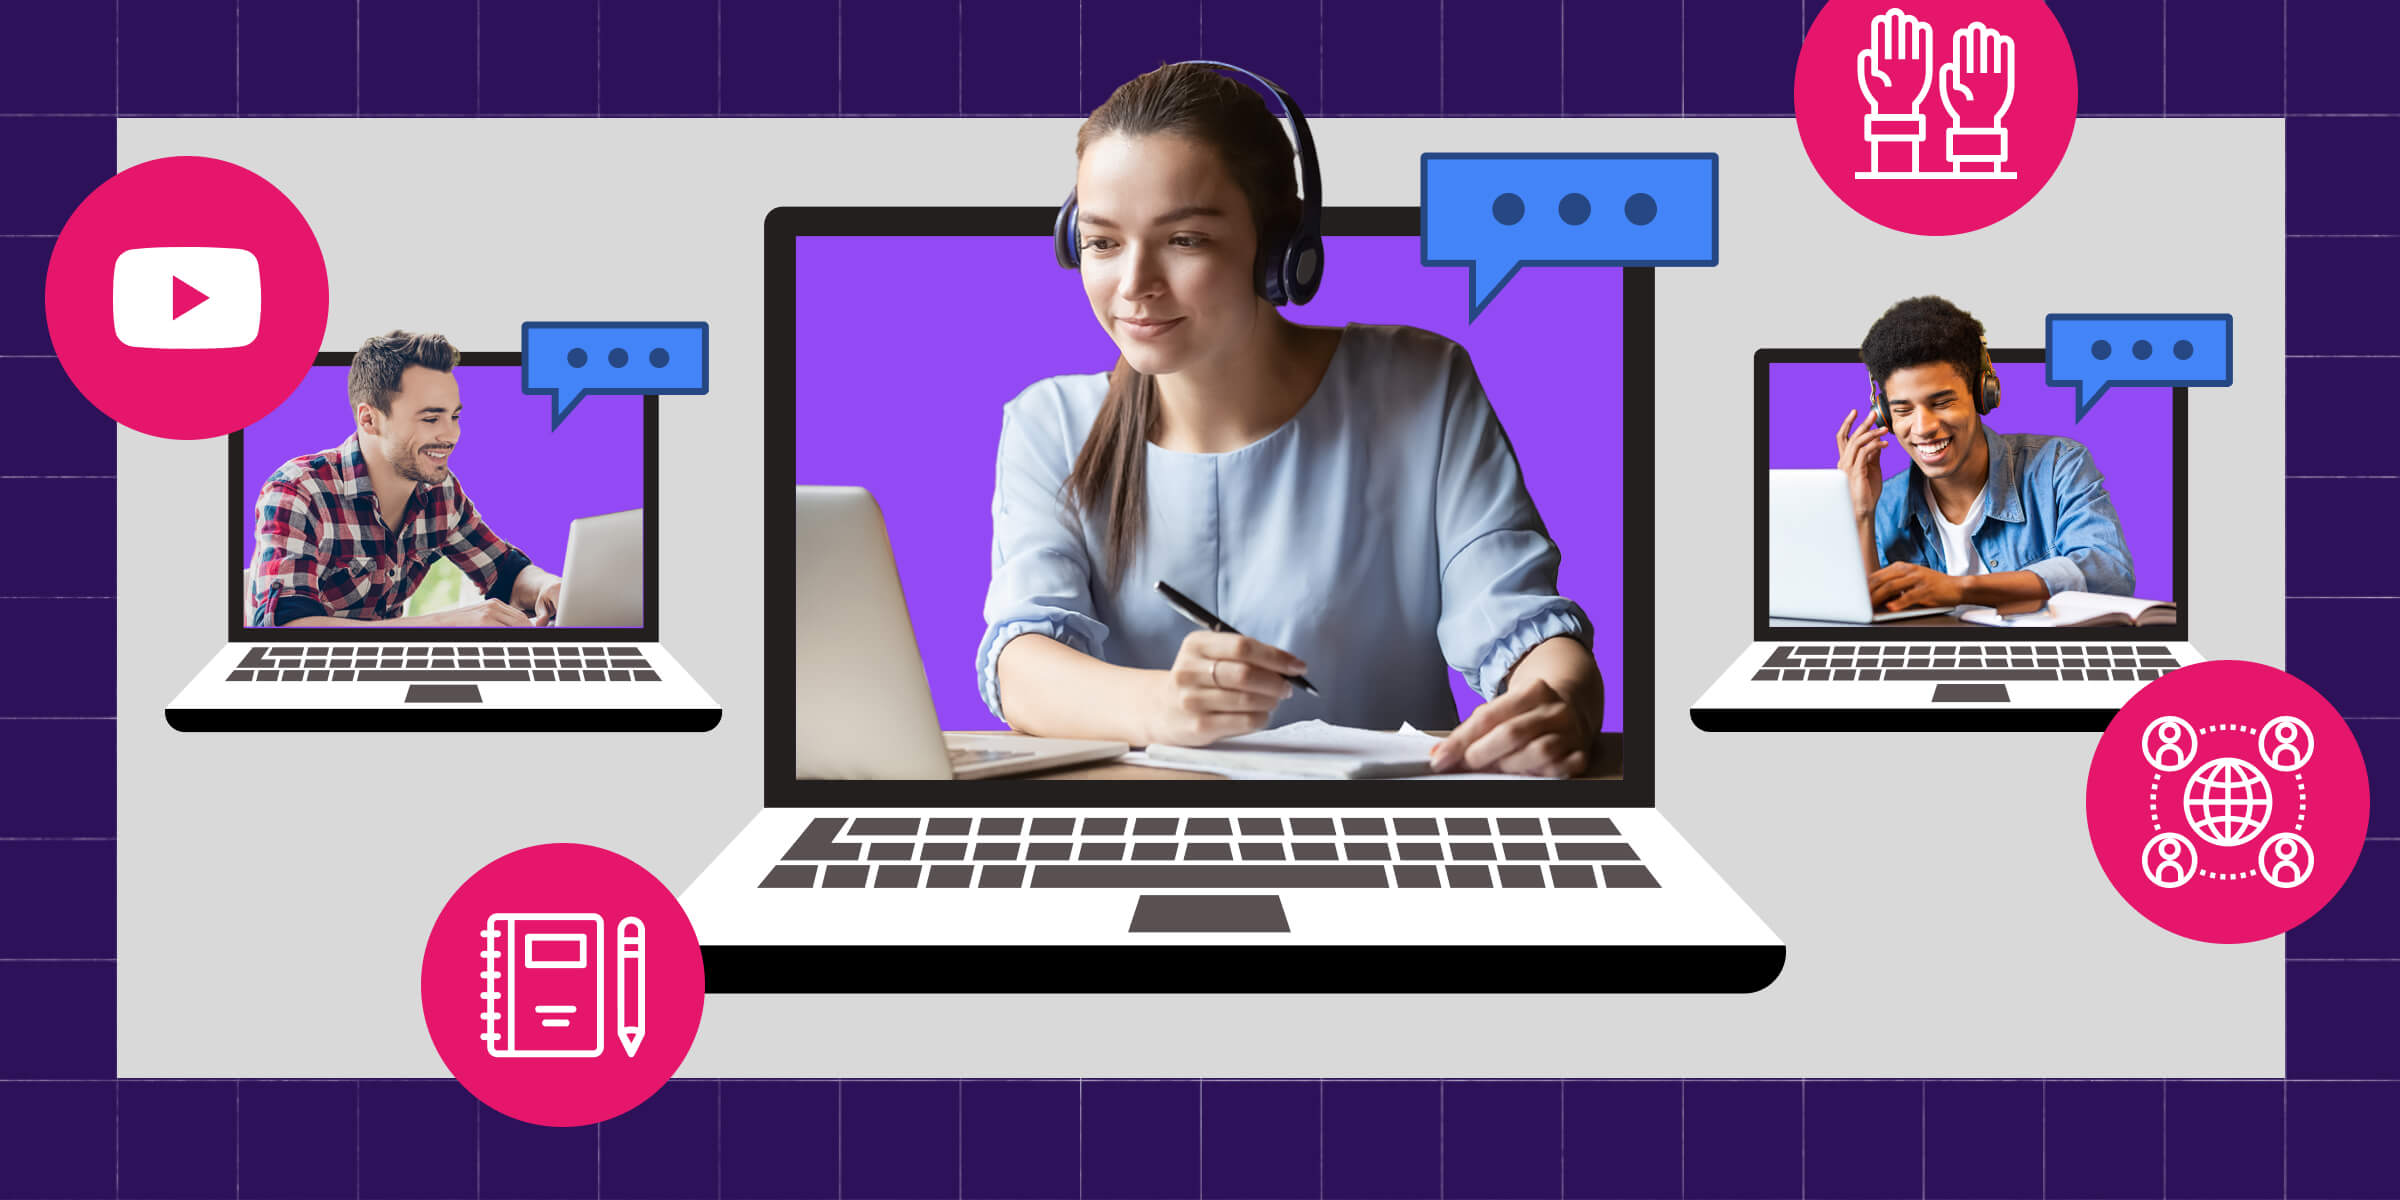 How Technology In The Classroom Can Impact Student Learning